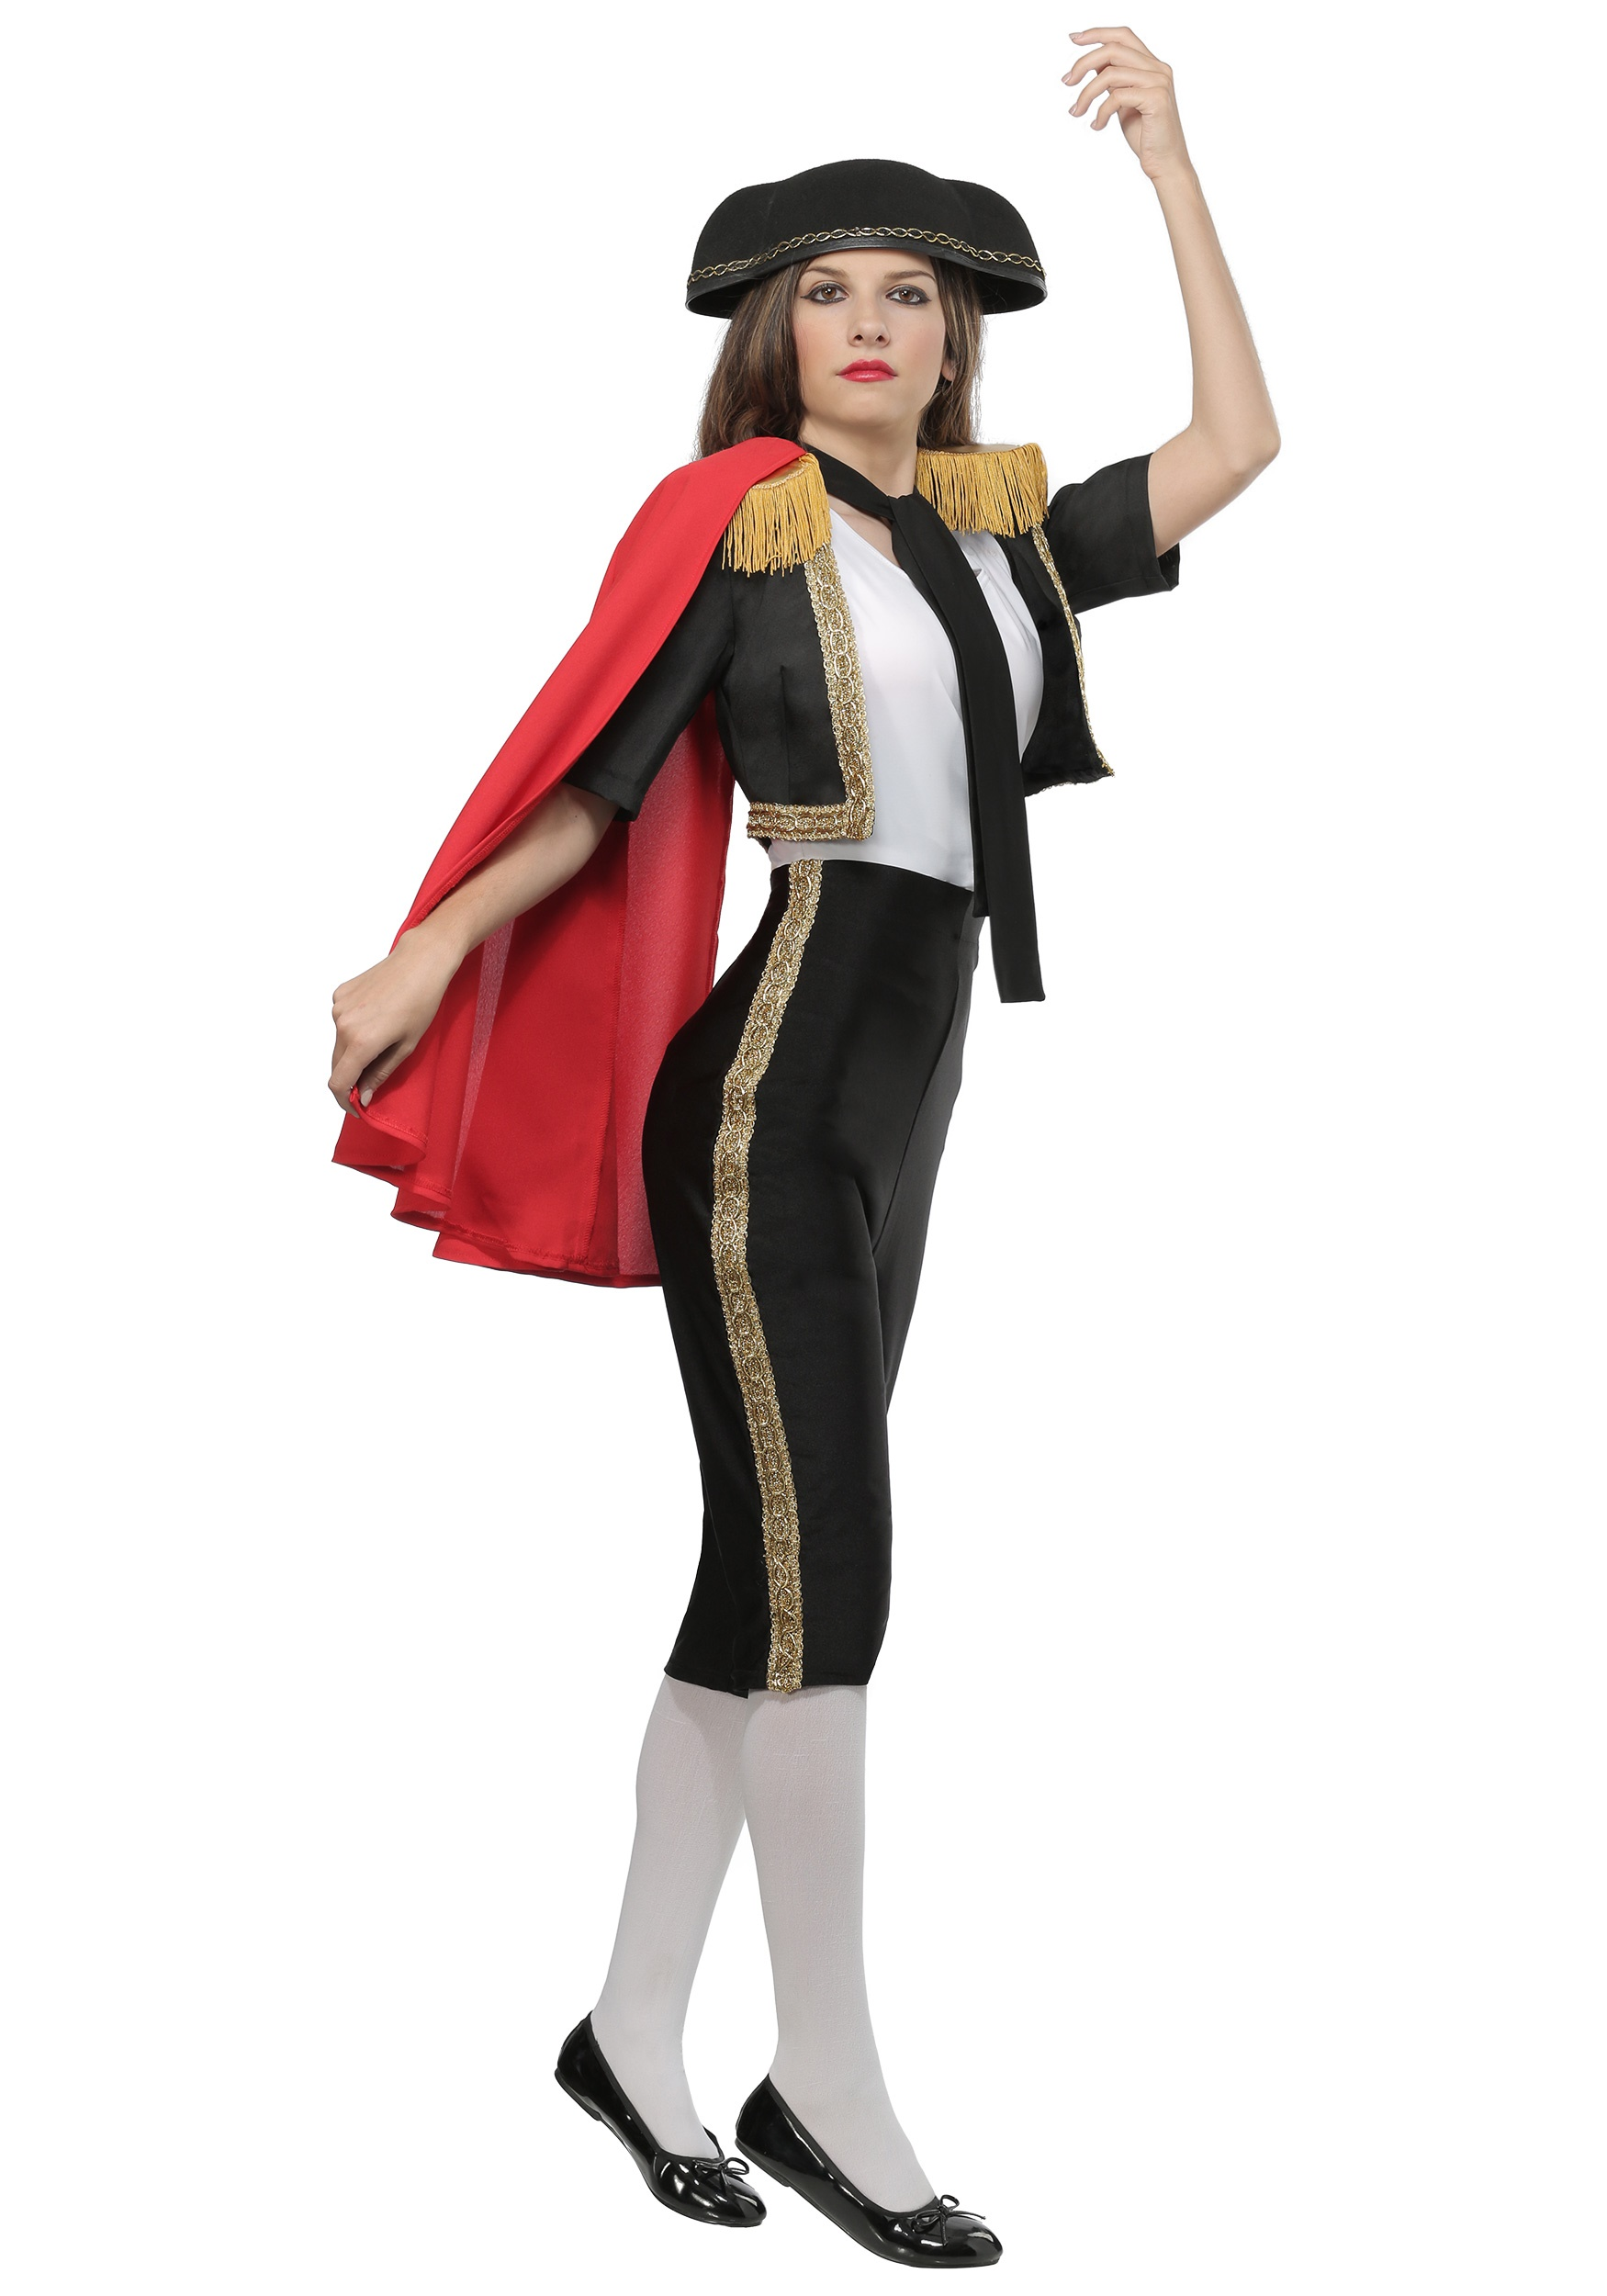 Magnificent Matador Plus Size Costume for Women 1X 2X